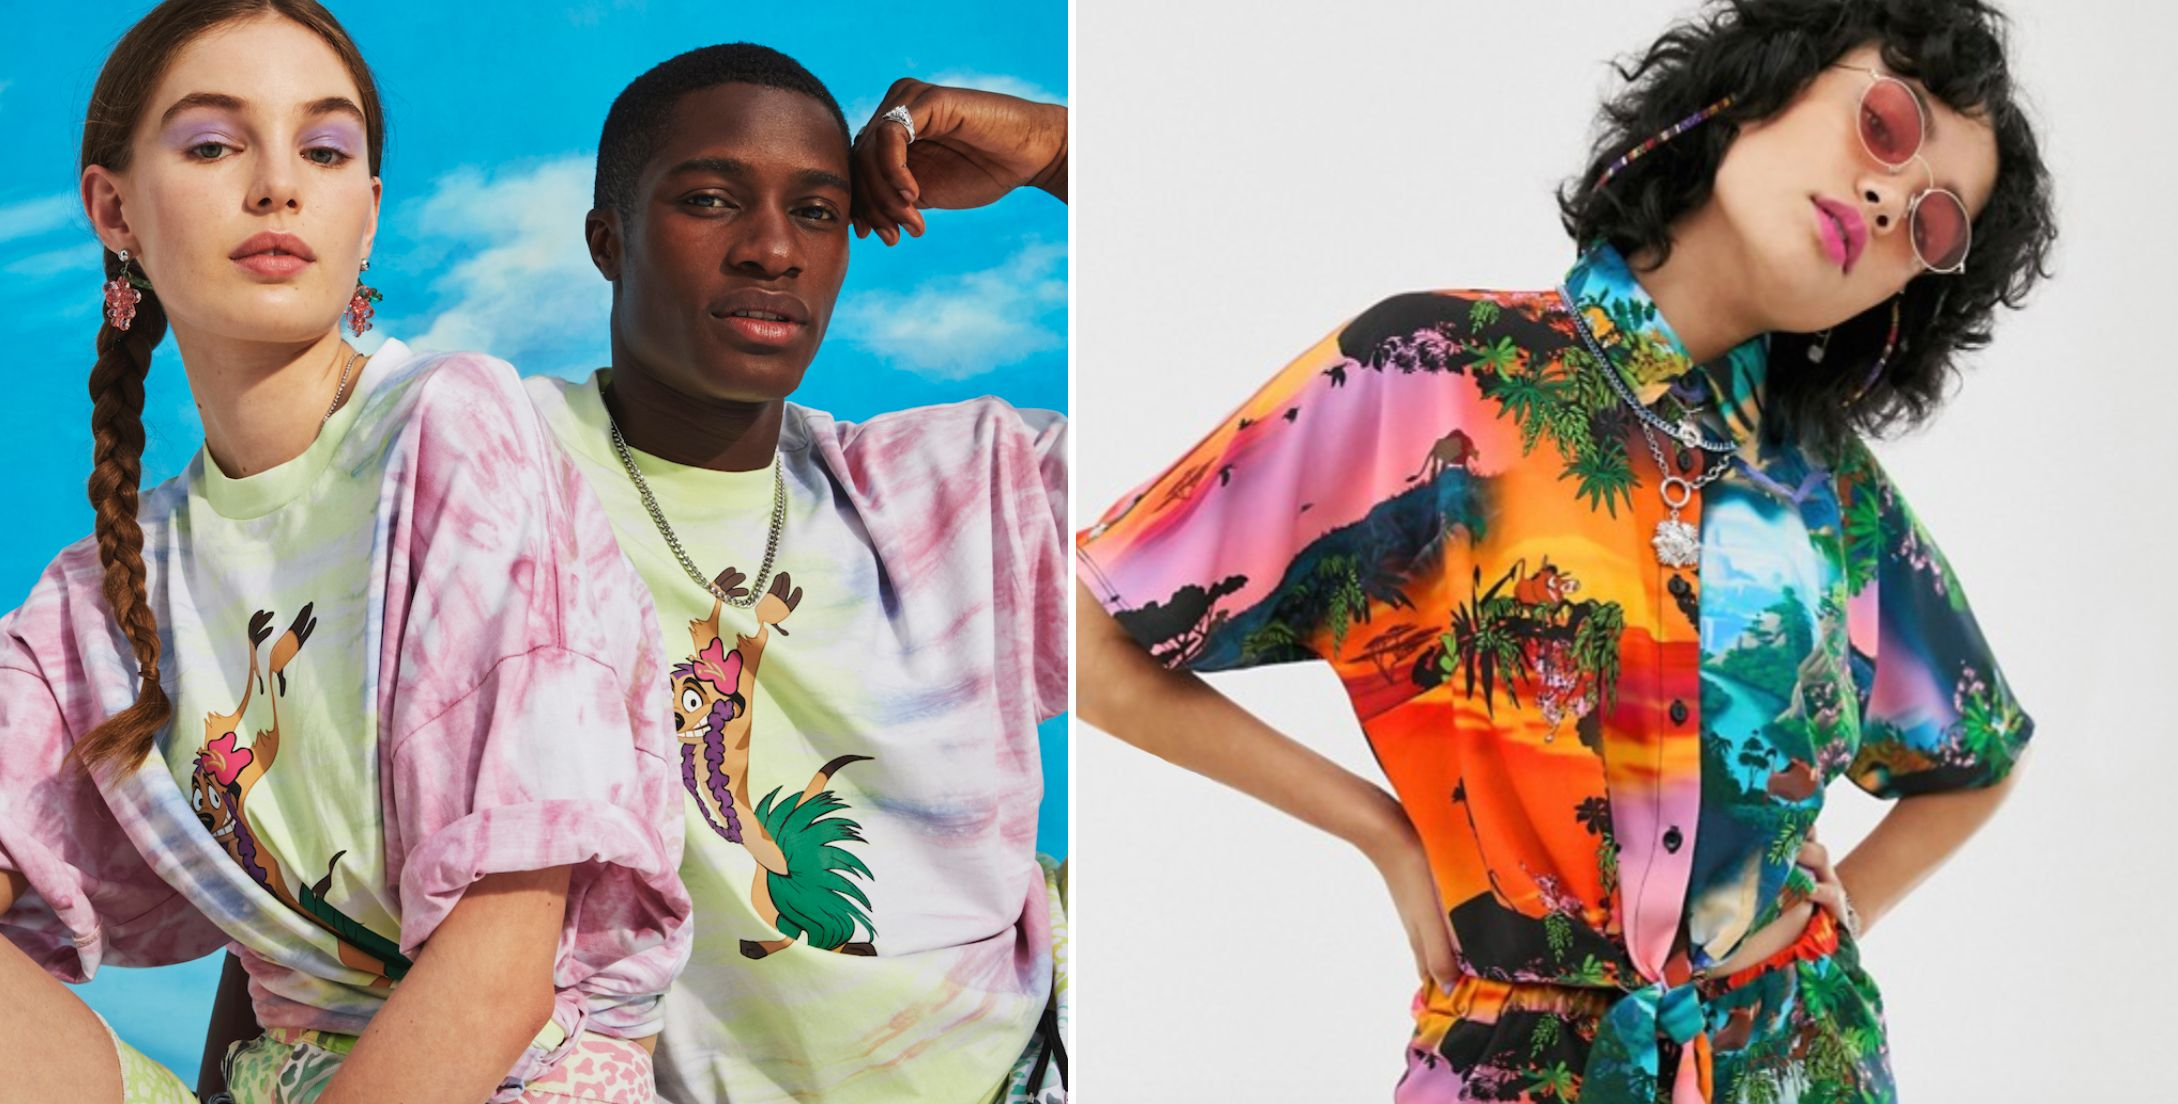 ASOS Dropped a Lion King Clothing Collection and the Nostalgia is So Real